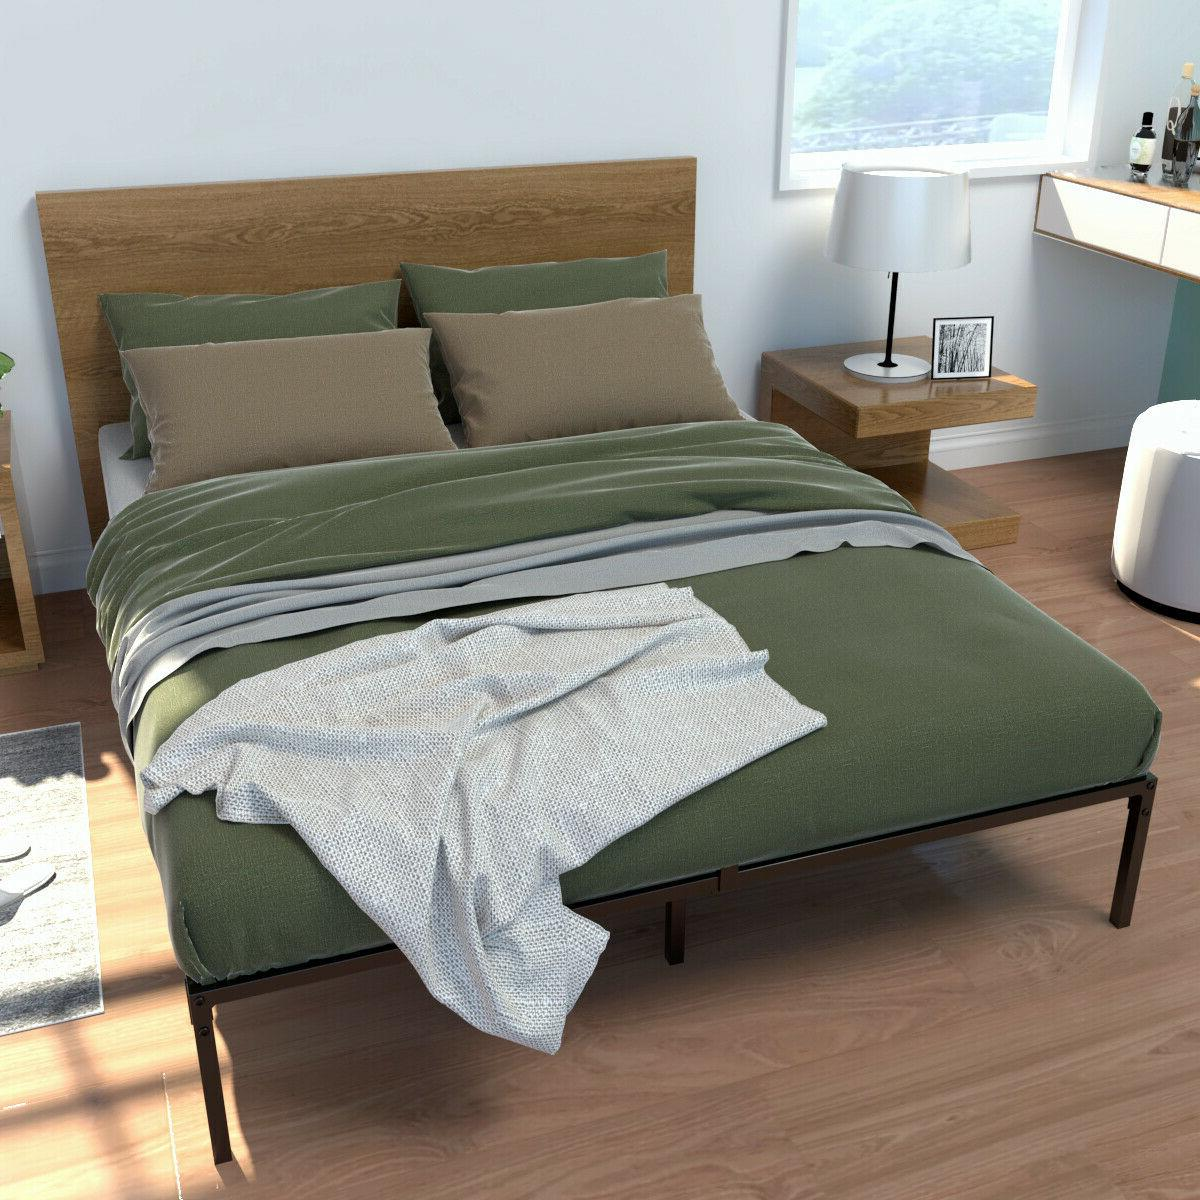 Queen Twin Bed Bed Storage Frame